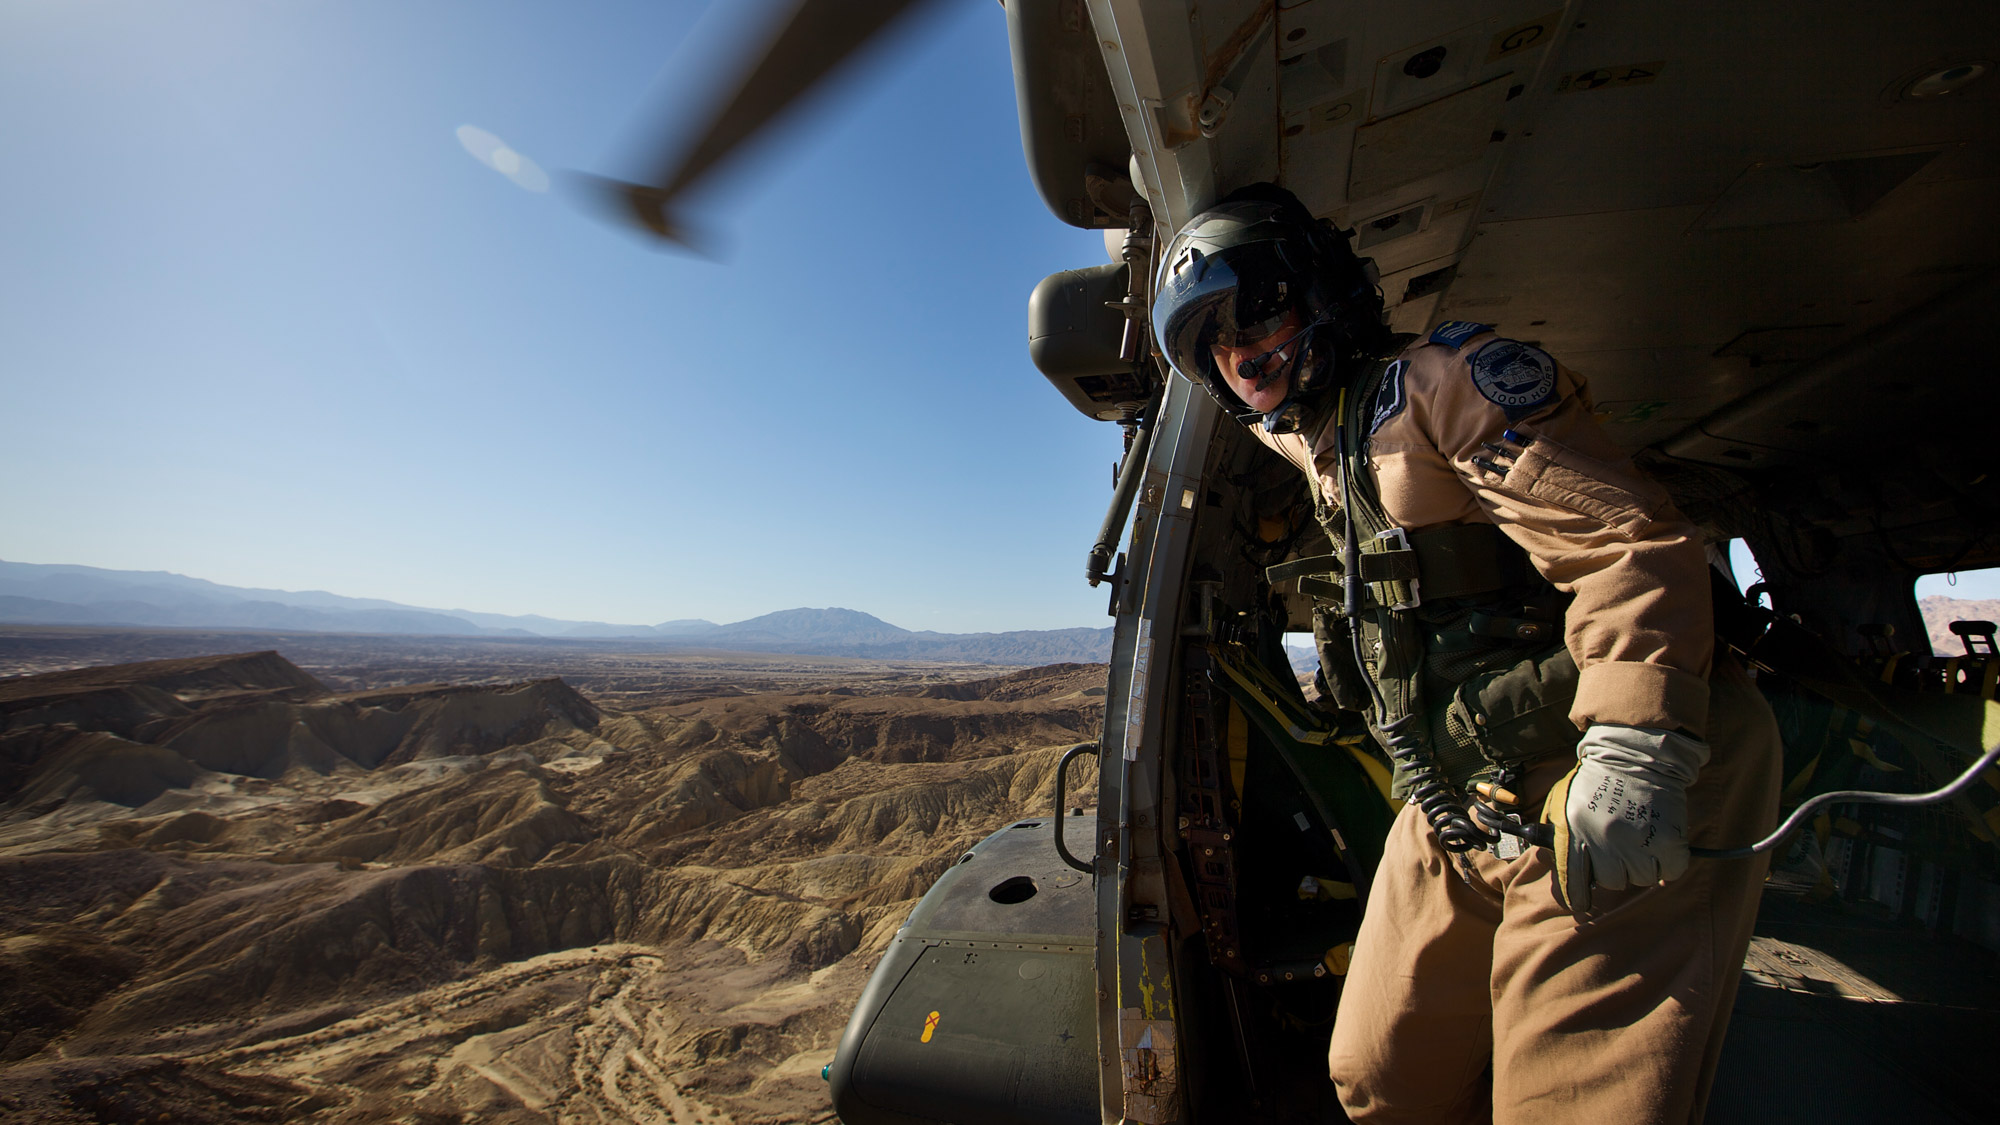 Over the Desert, RAF PR Photograph Award Winner